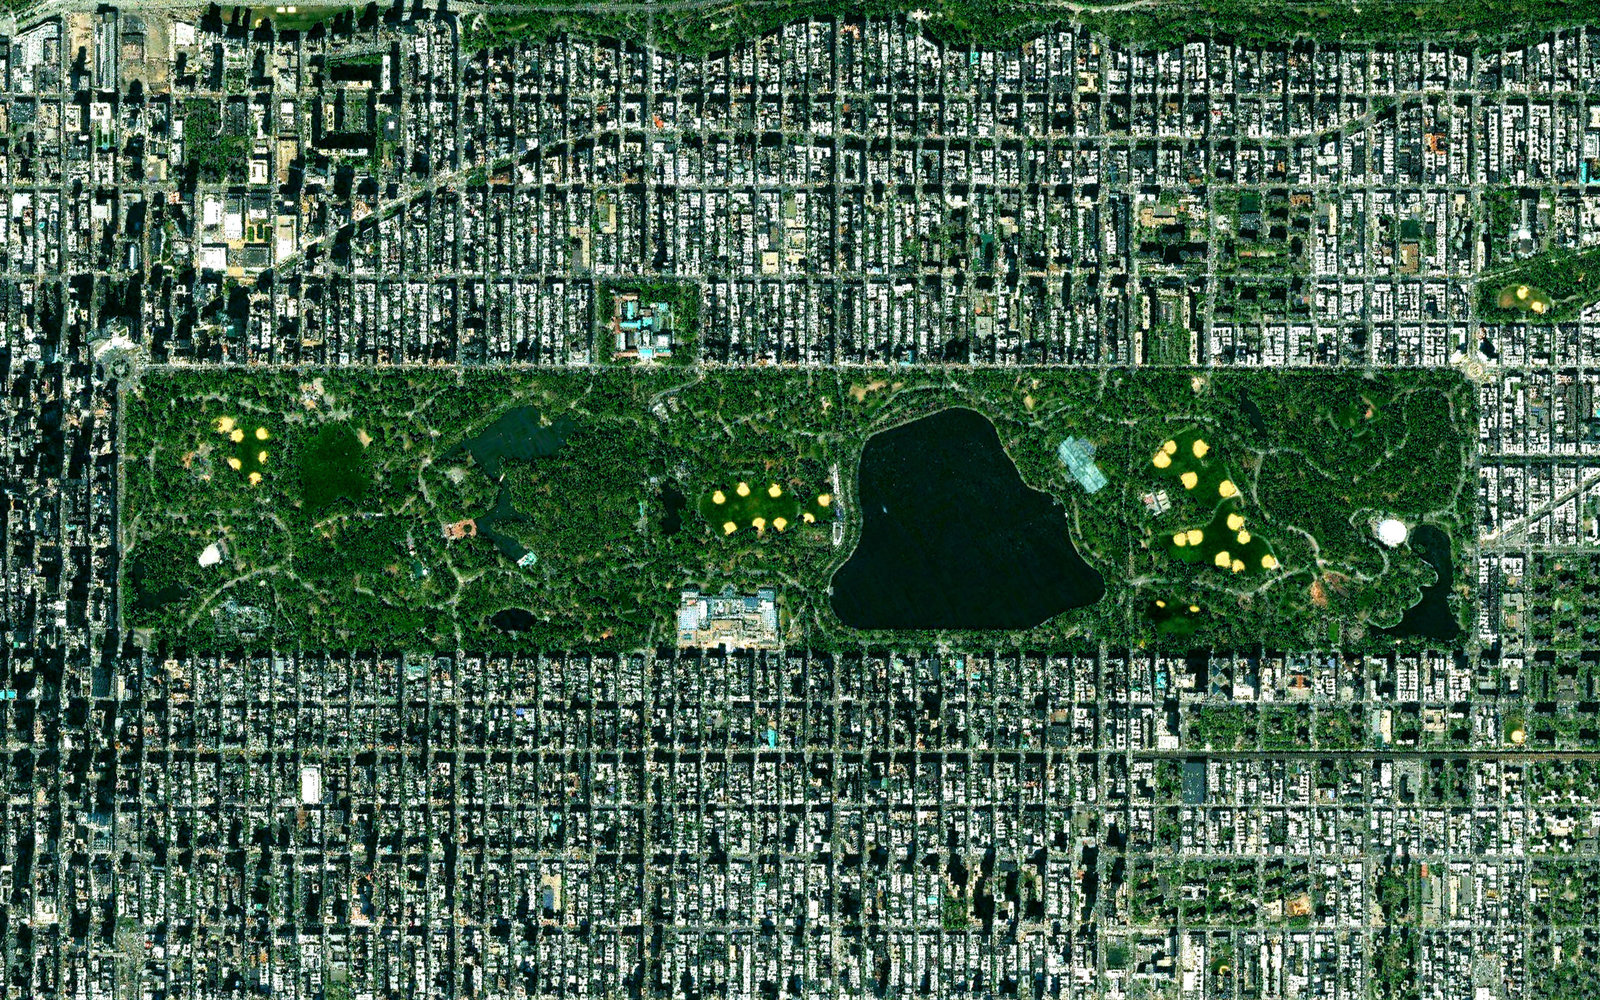 News: There's a Secret Tunnel Under Central Park